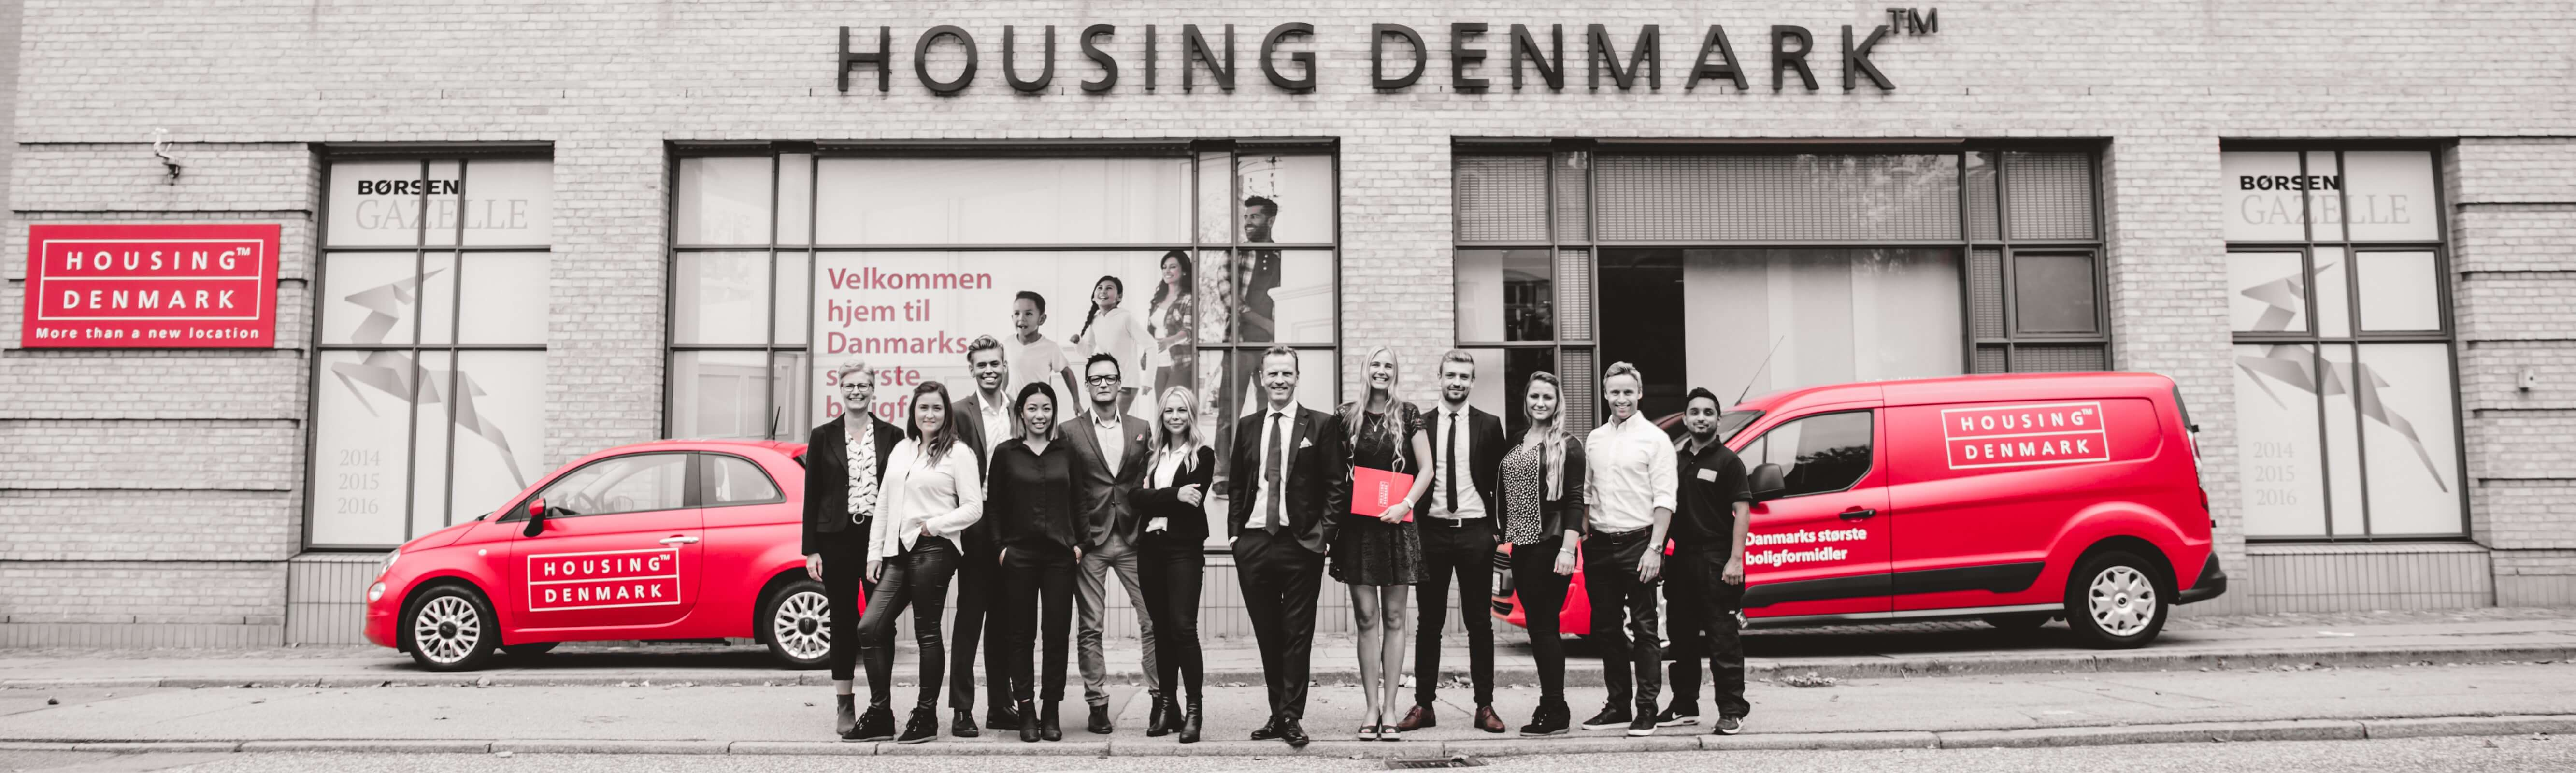 Housing Denmark Services is an independent success